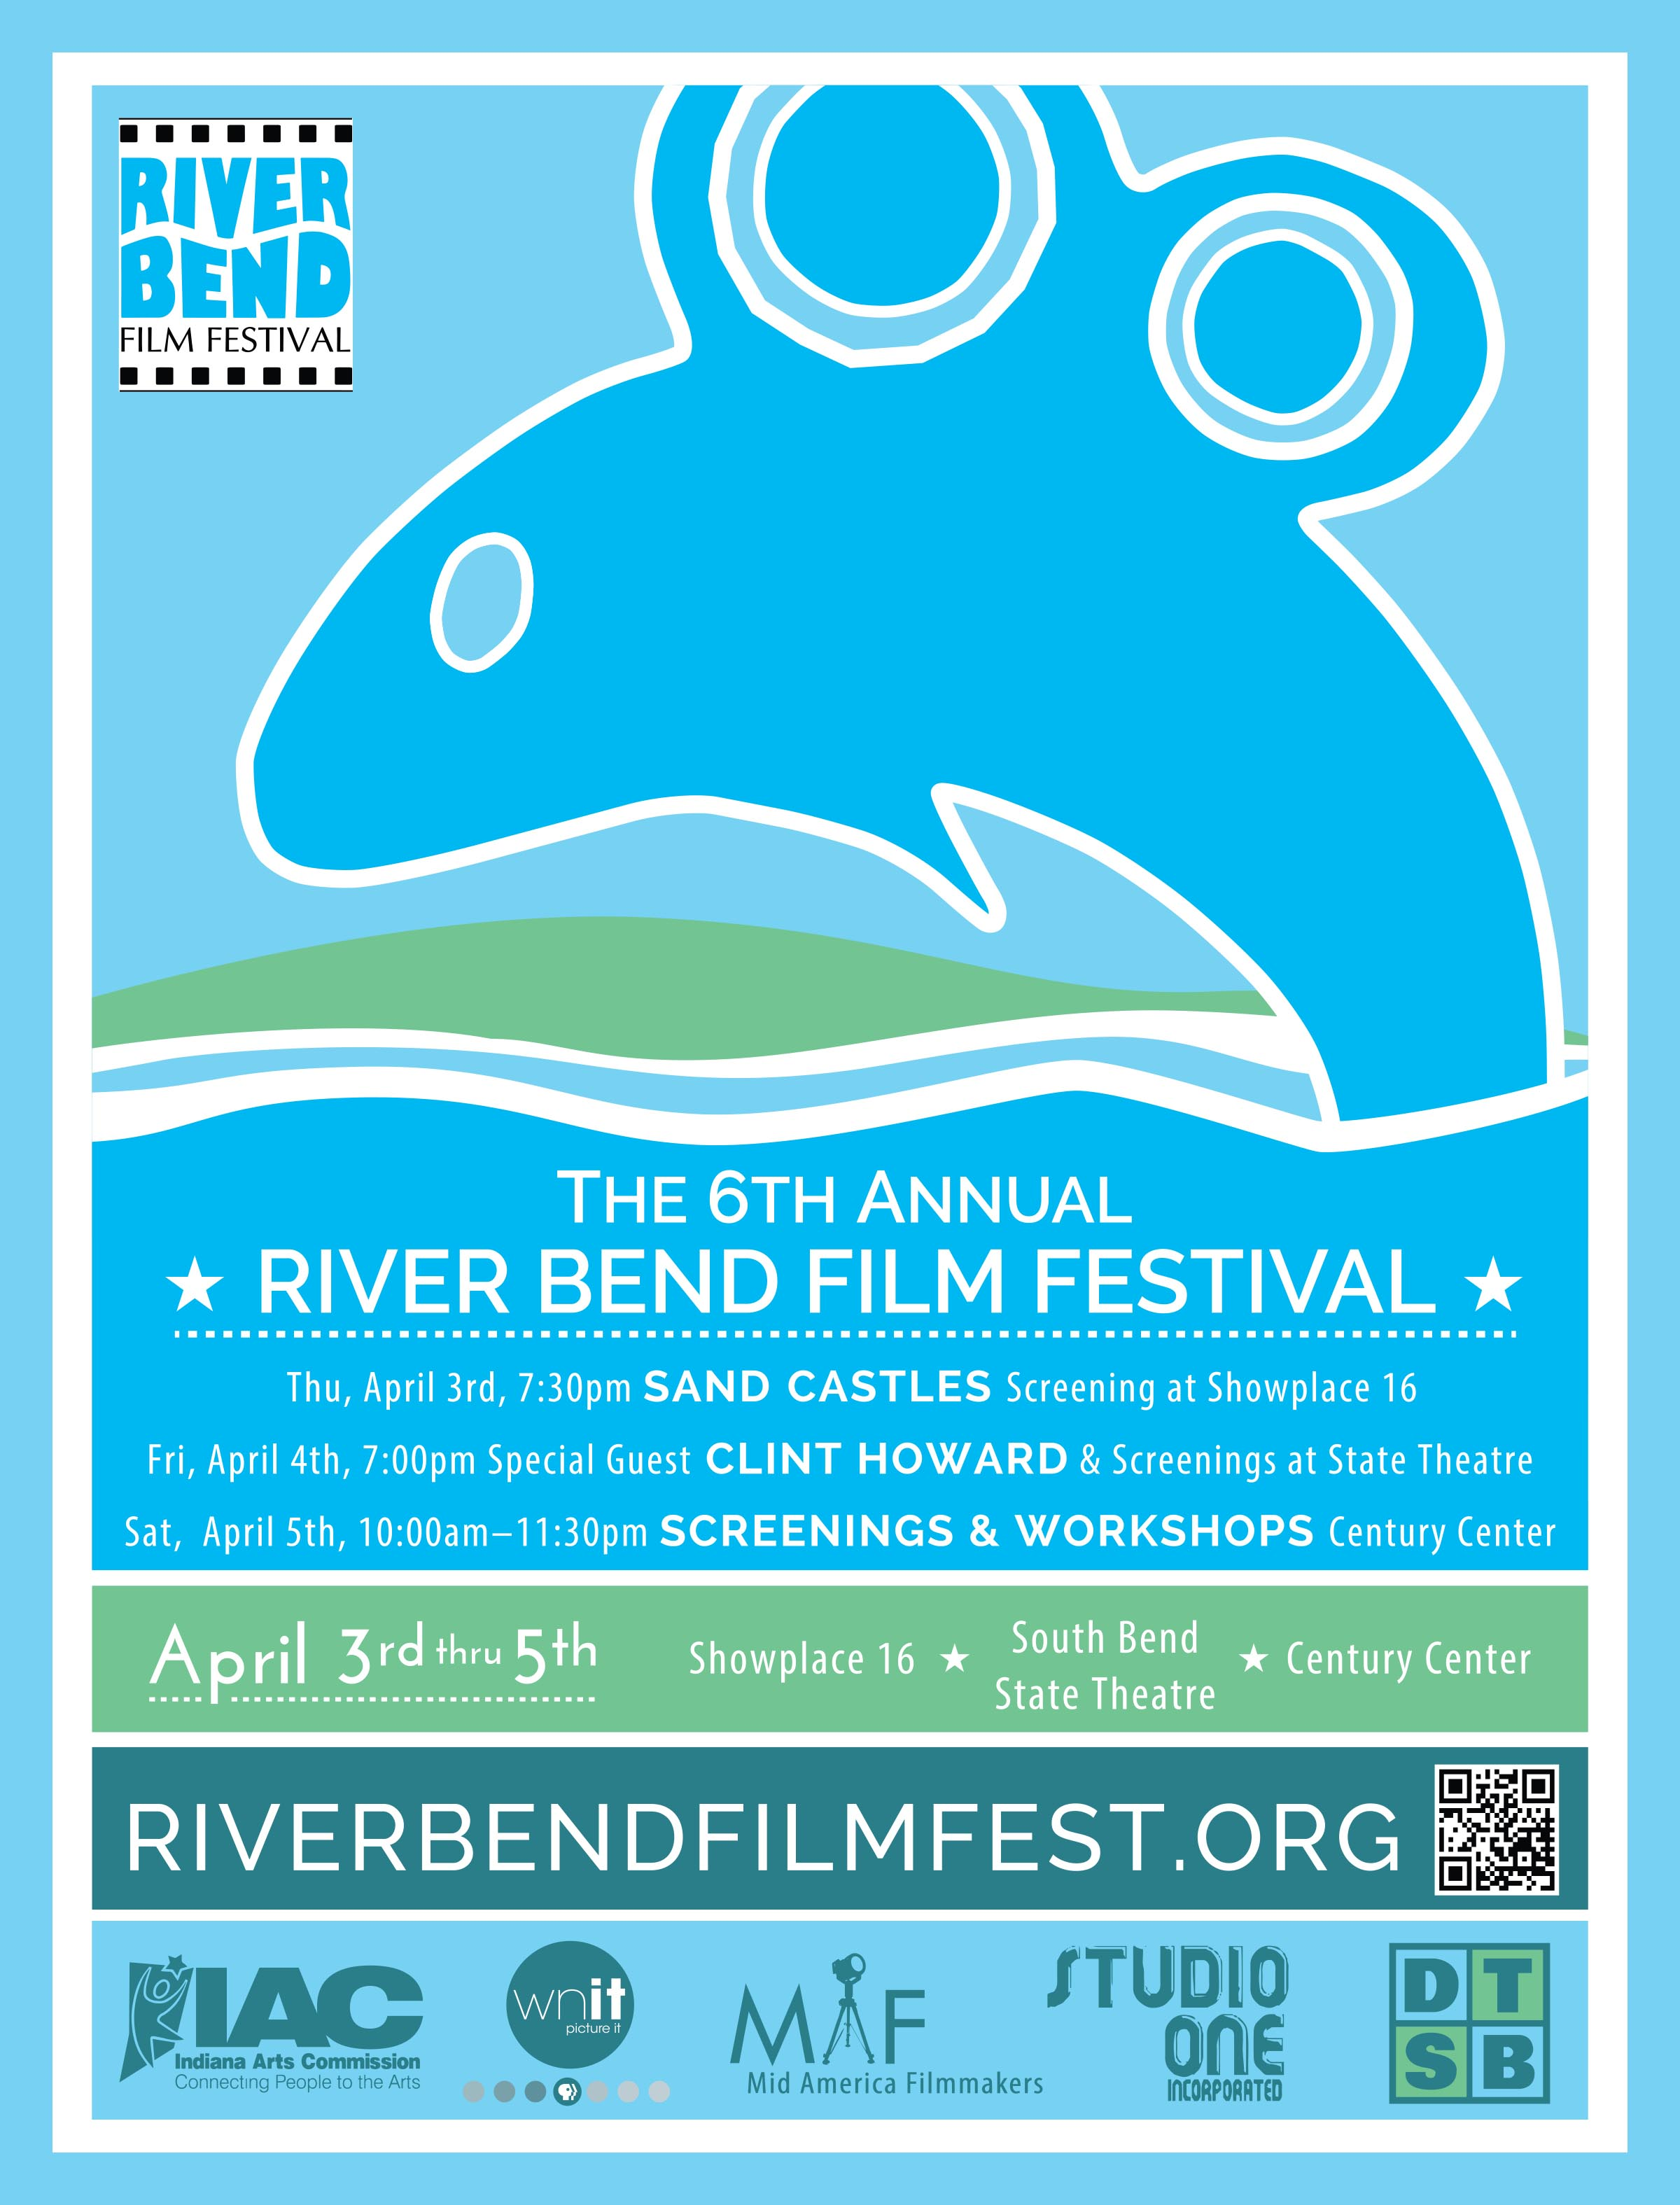 6th Annual River Bend Film Festival Features Hollywood Actor Clint